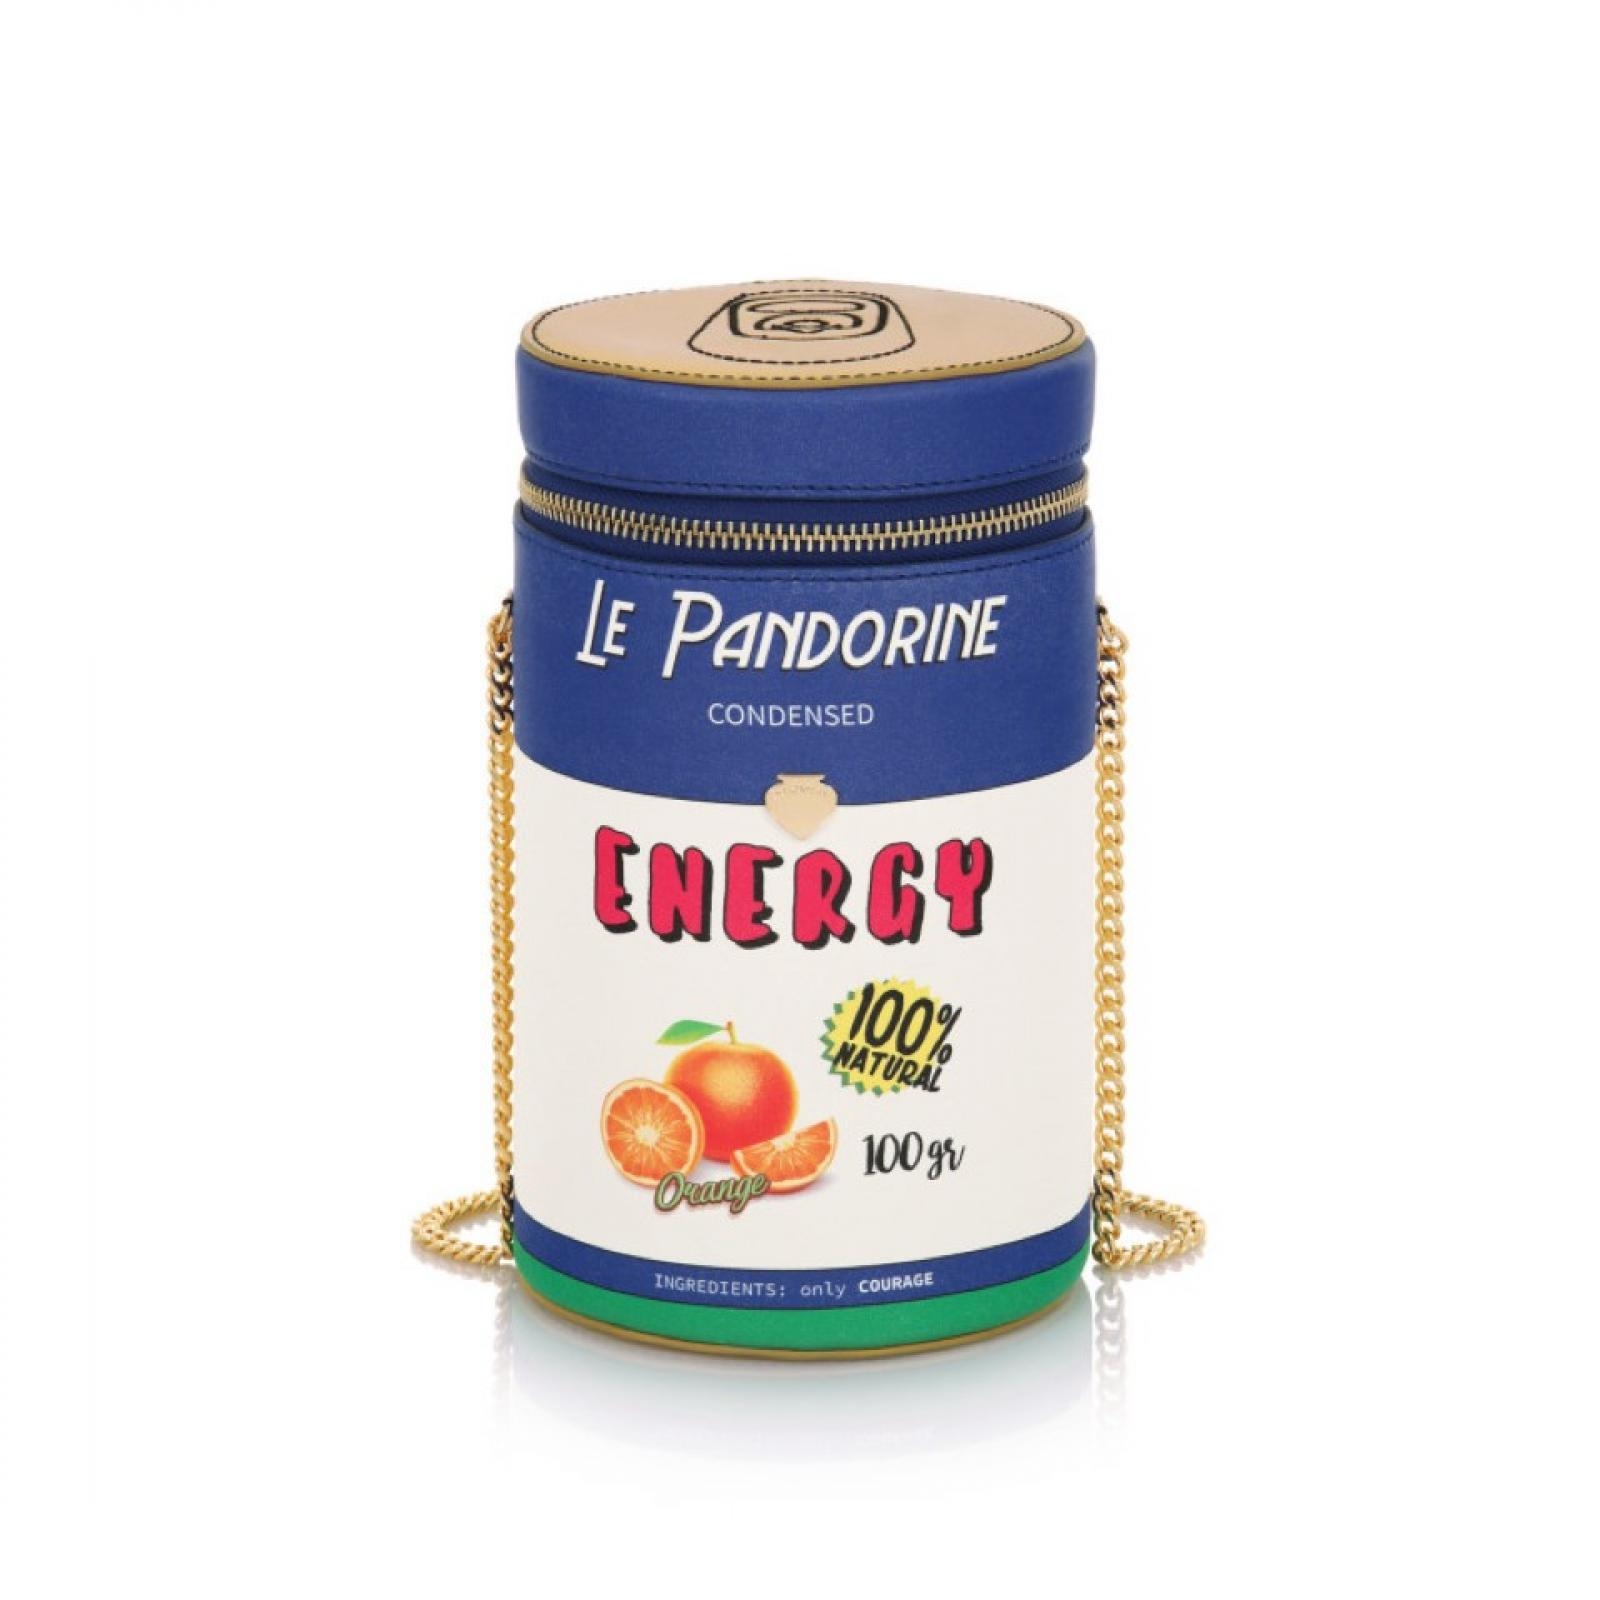 Le Pandorine Tin Bag Energy - 1